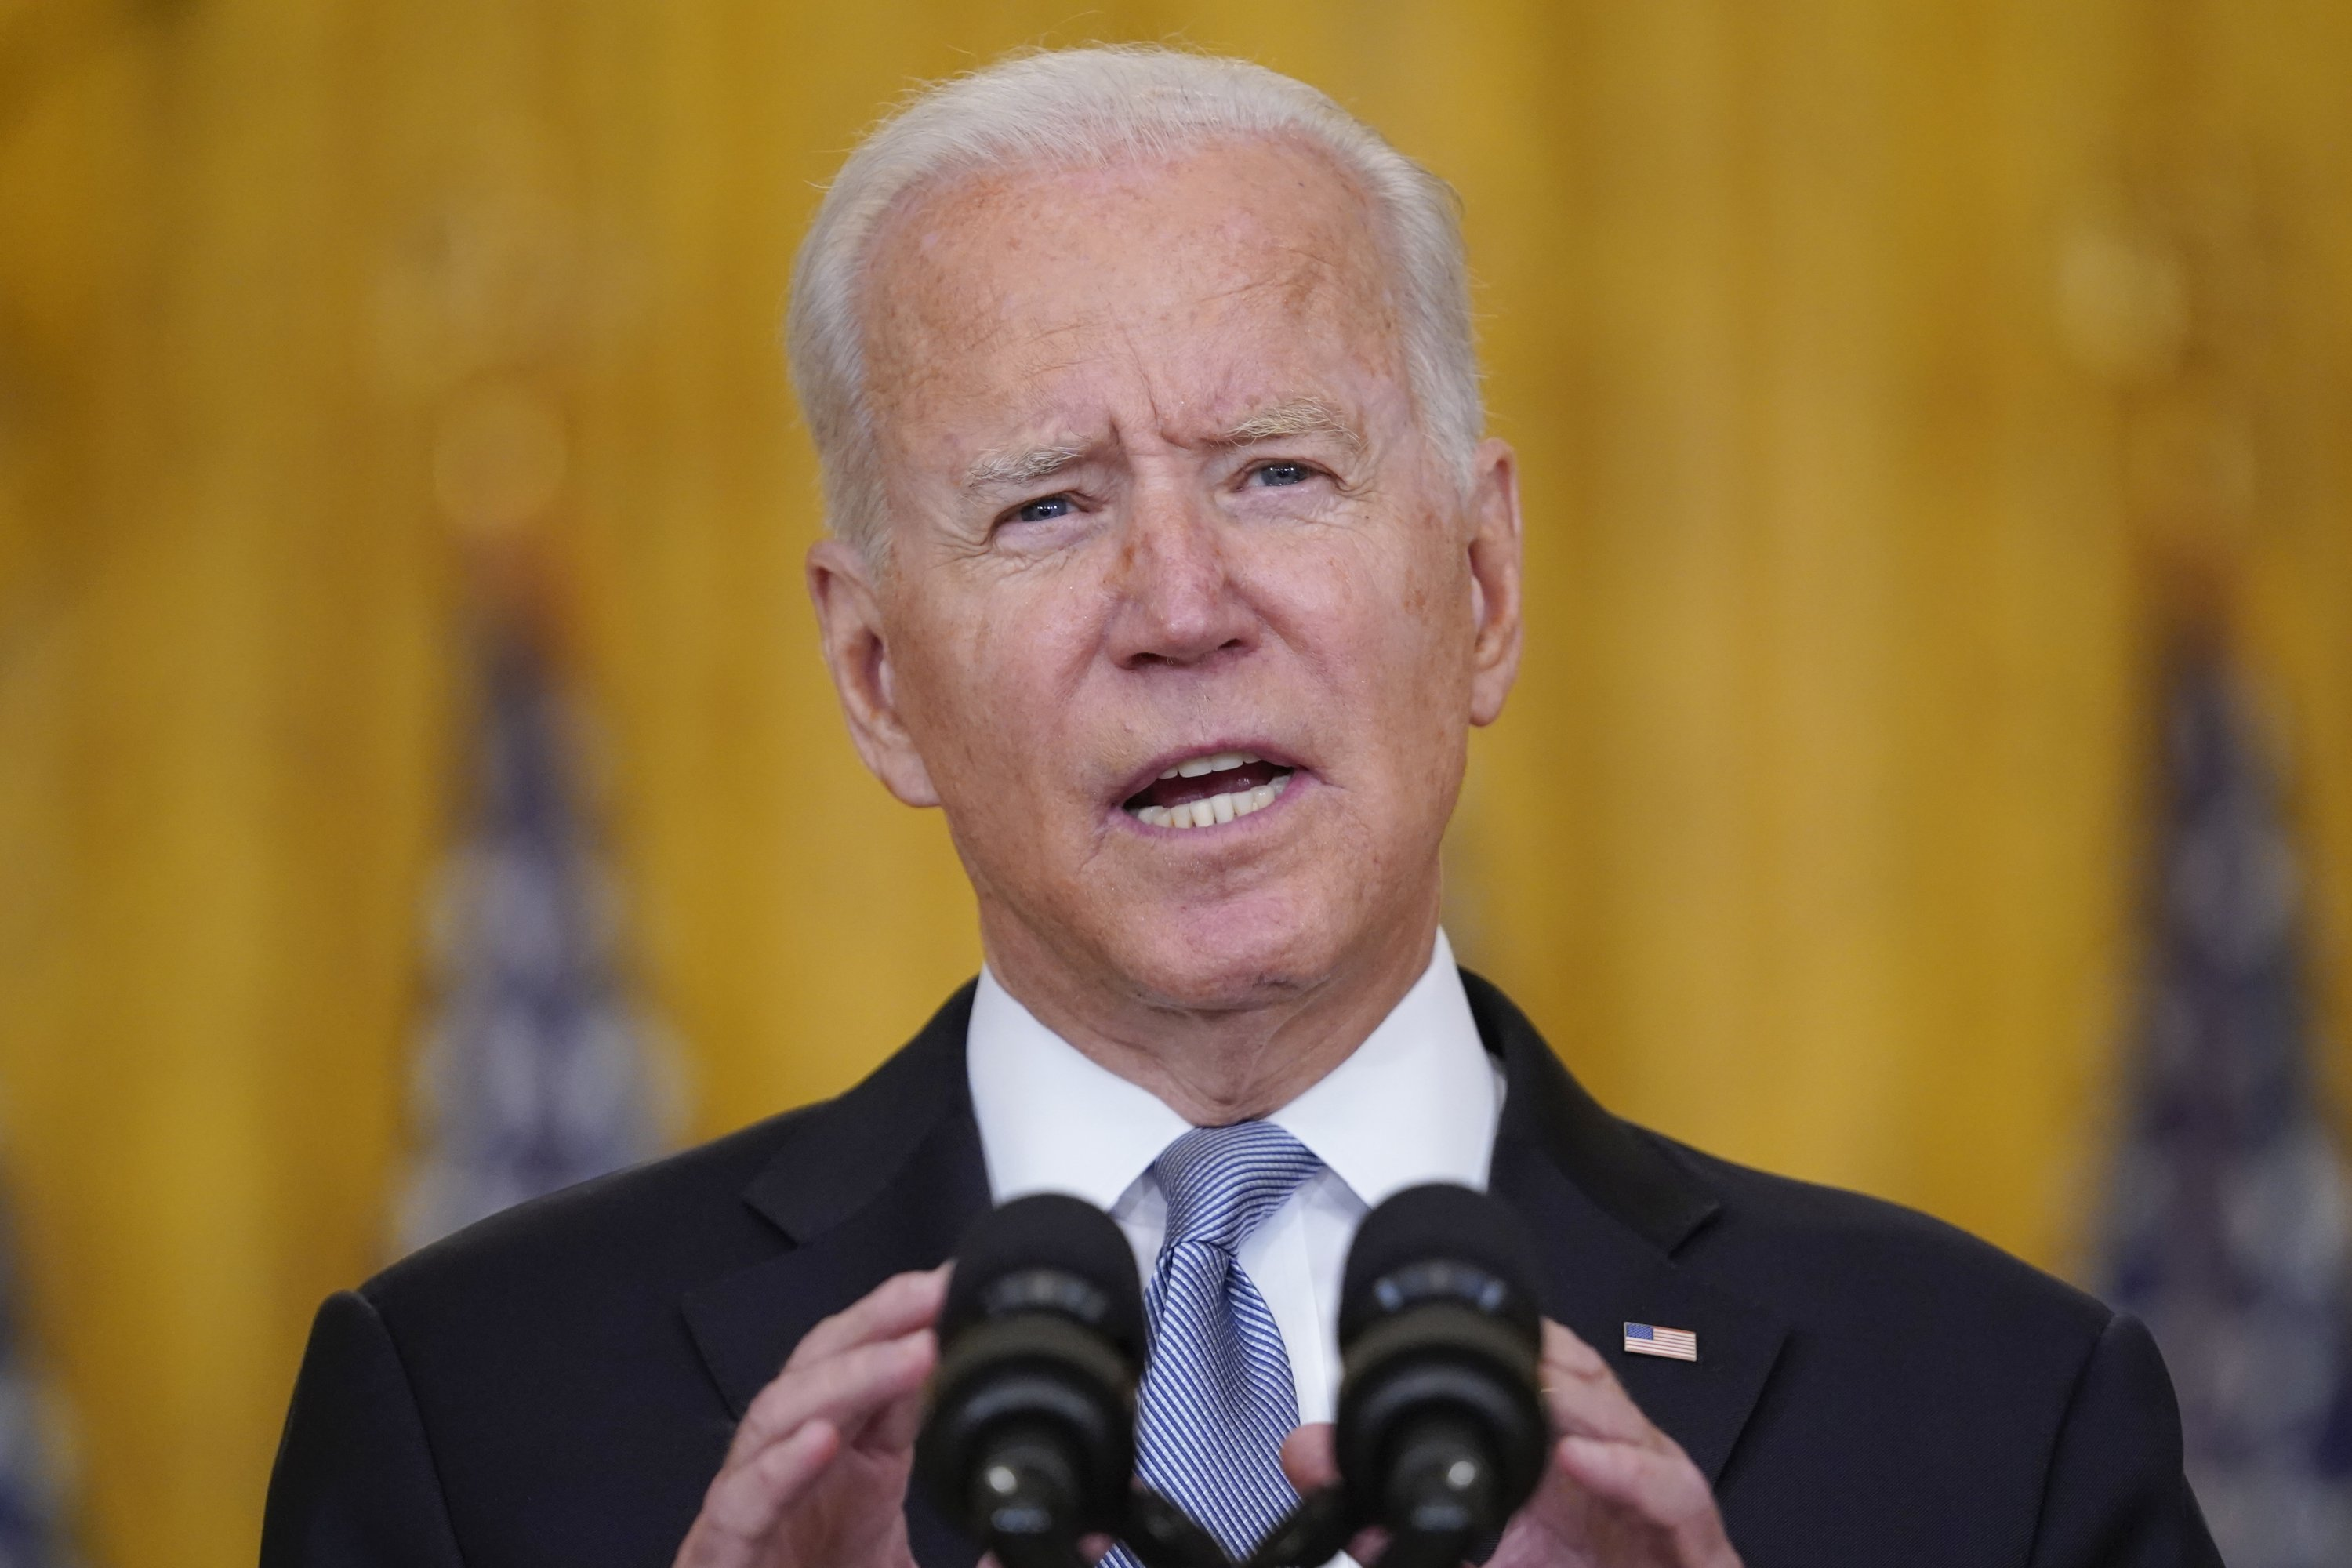 President Joe Biden speaks about Afghanistan from the East Room of the White House, Washington D.C., U.S., Aug. 16, 2021. (AP Photo)